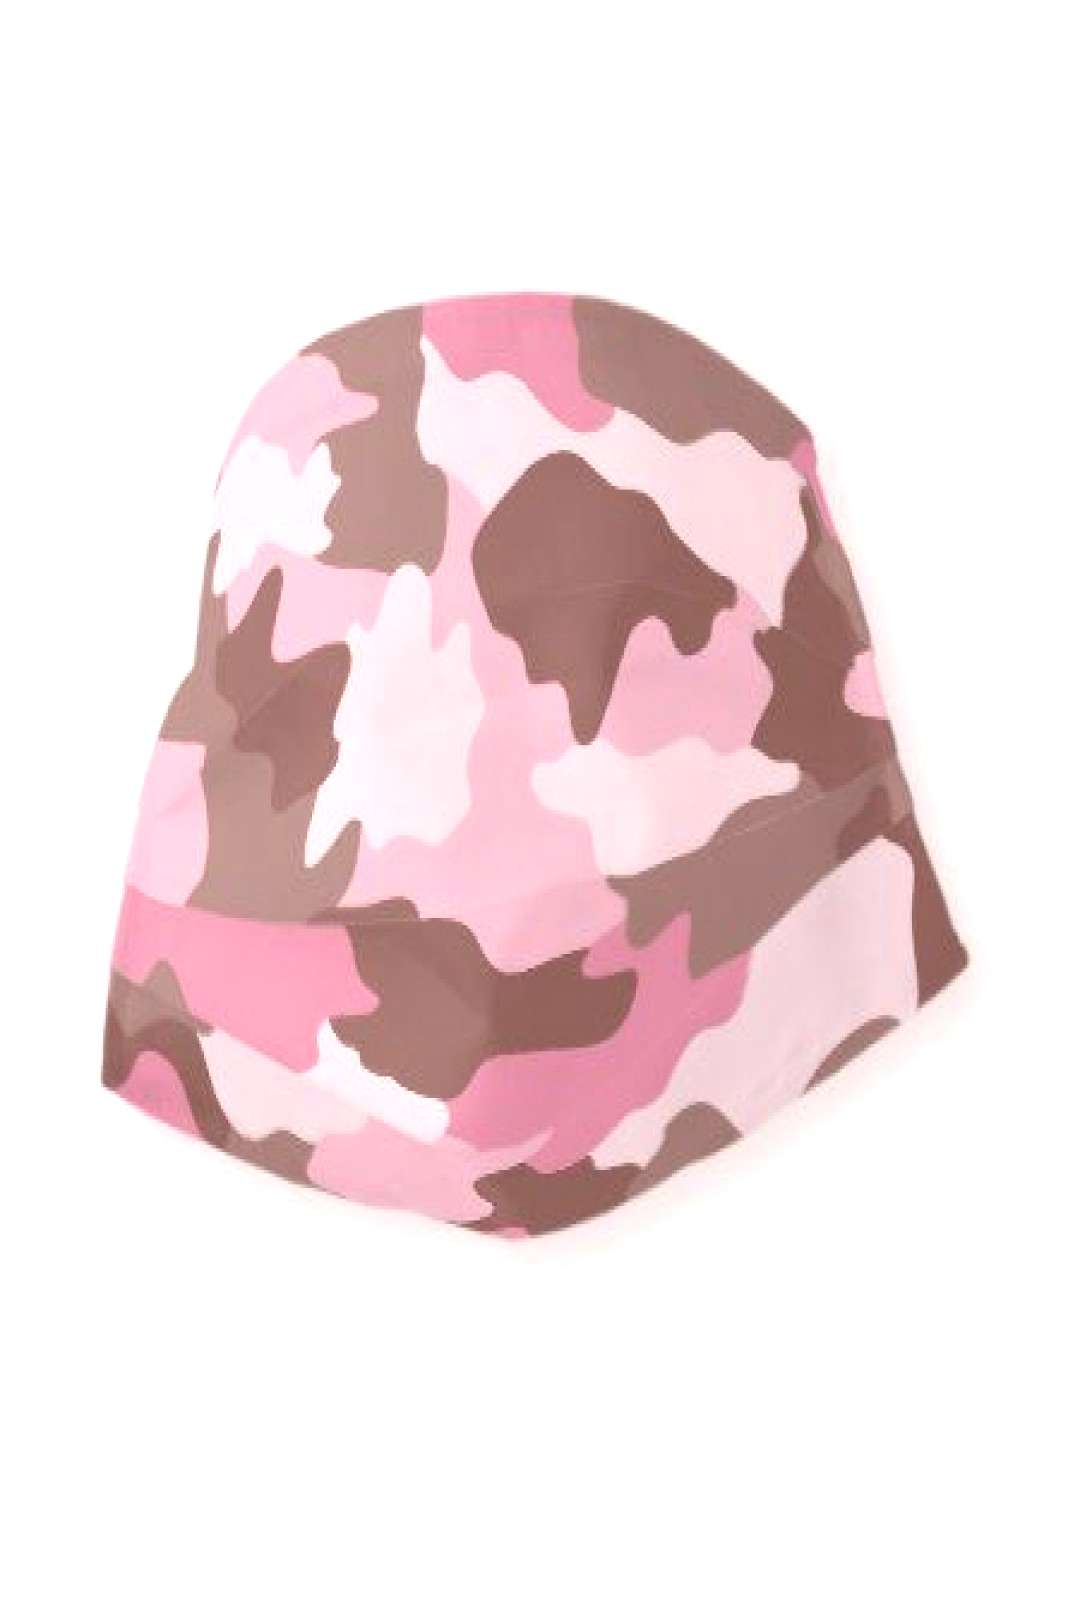 Pink Camouflage Girly Pattern Cloth Face Mask - tap/click to get yours right now!